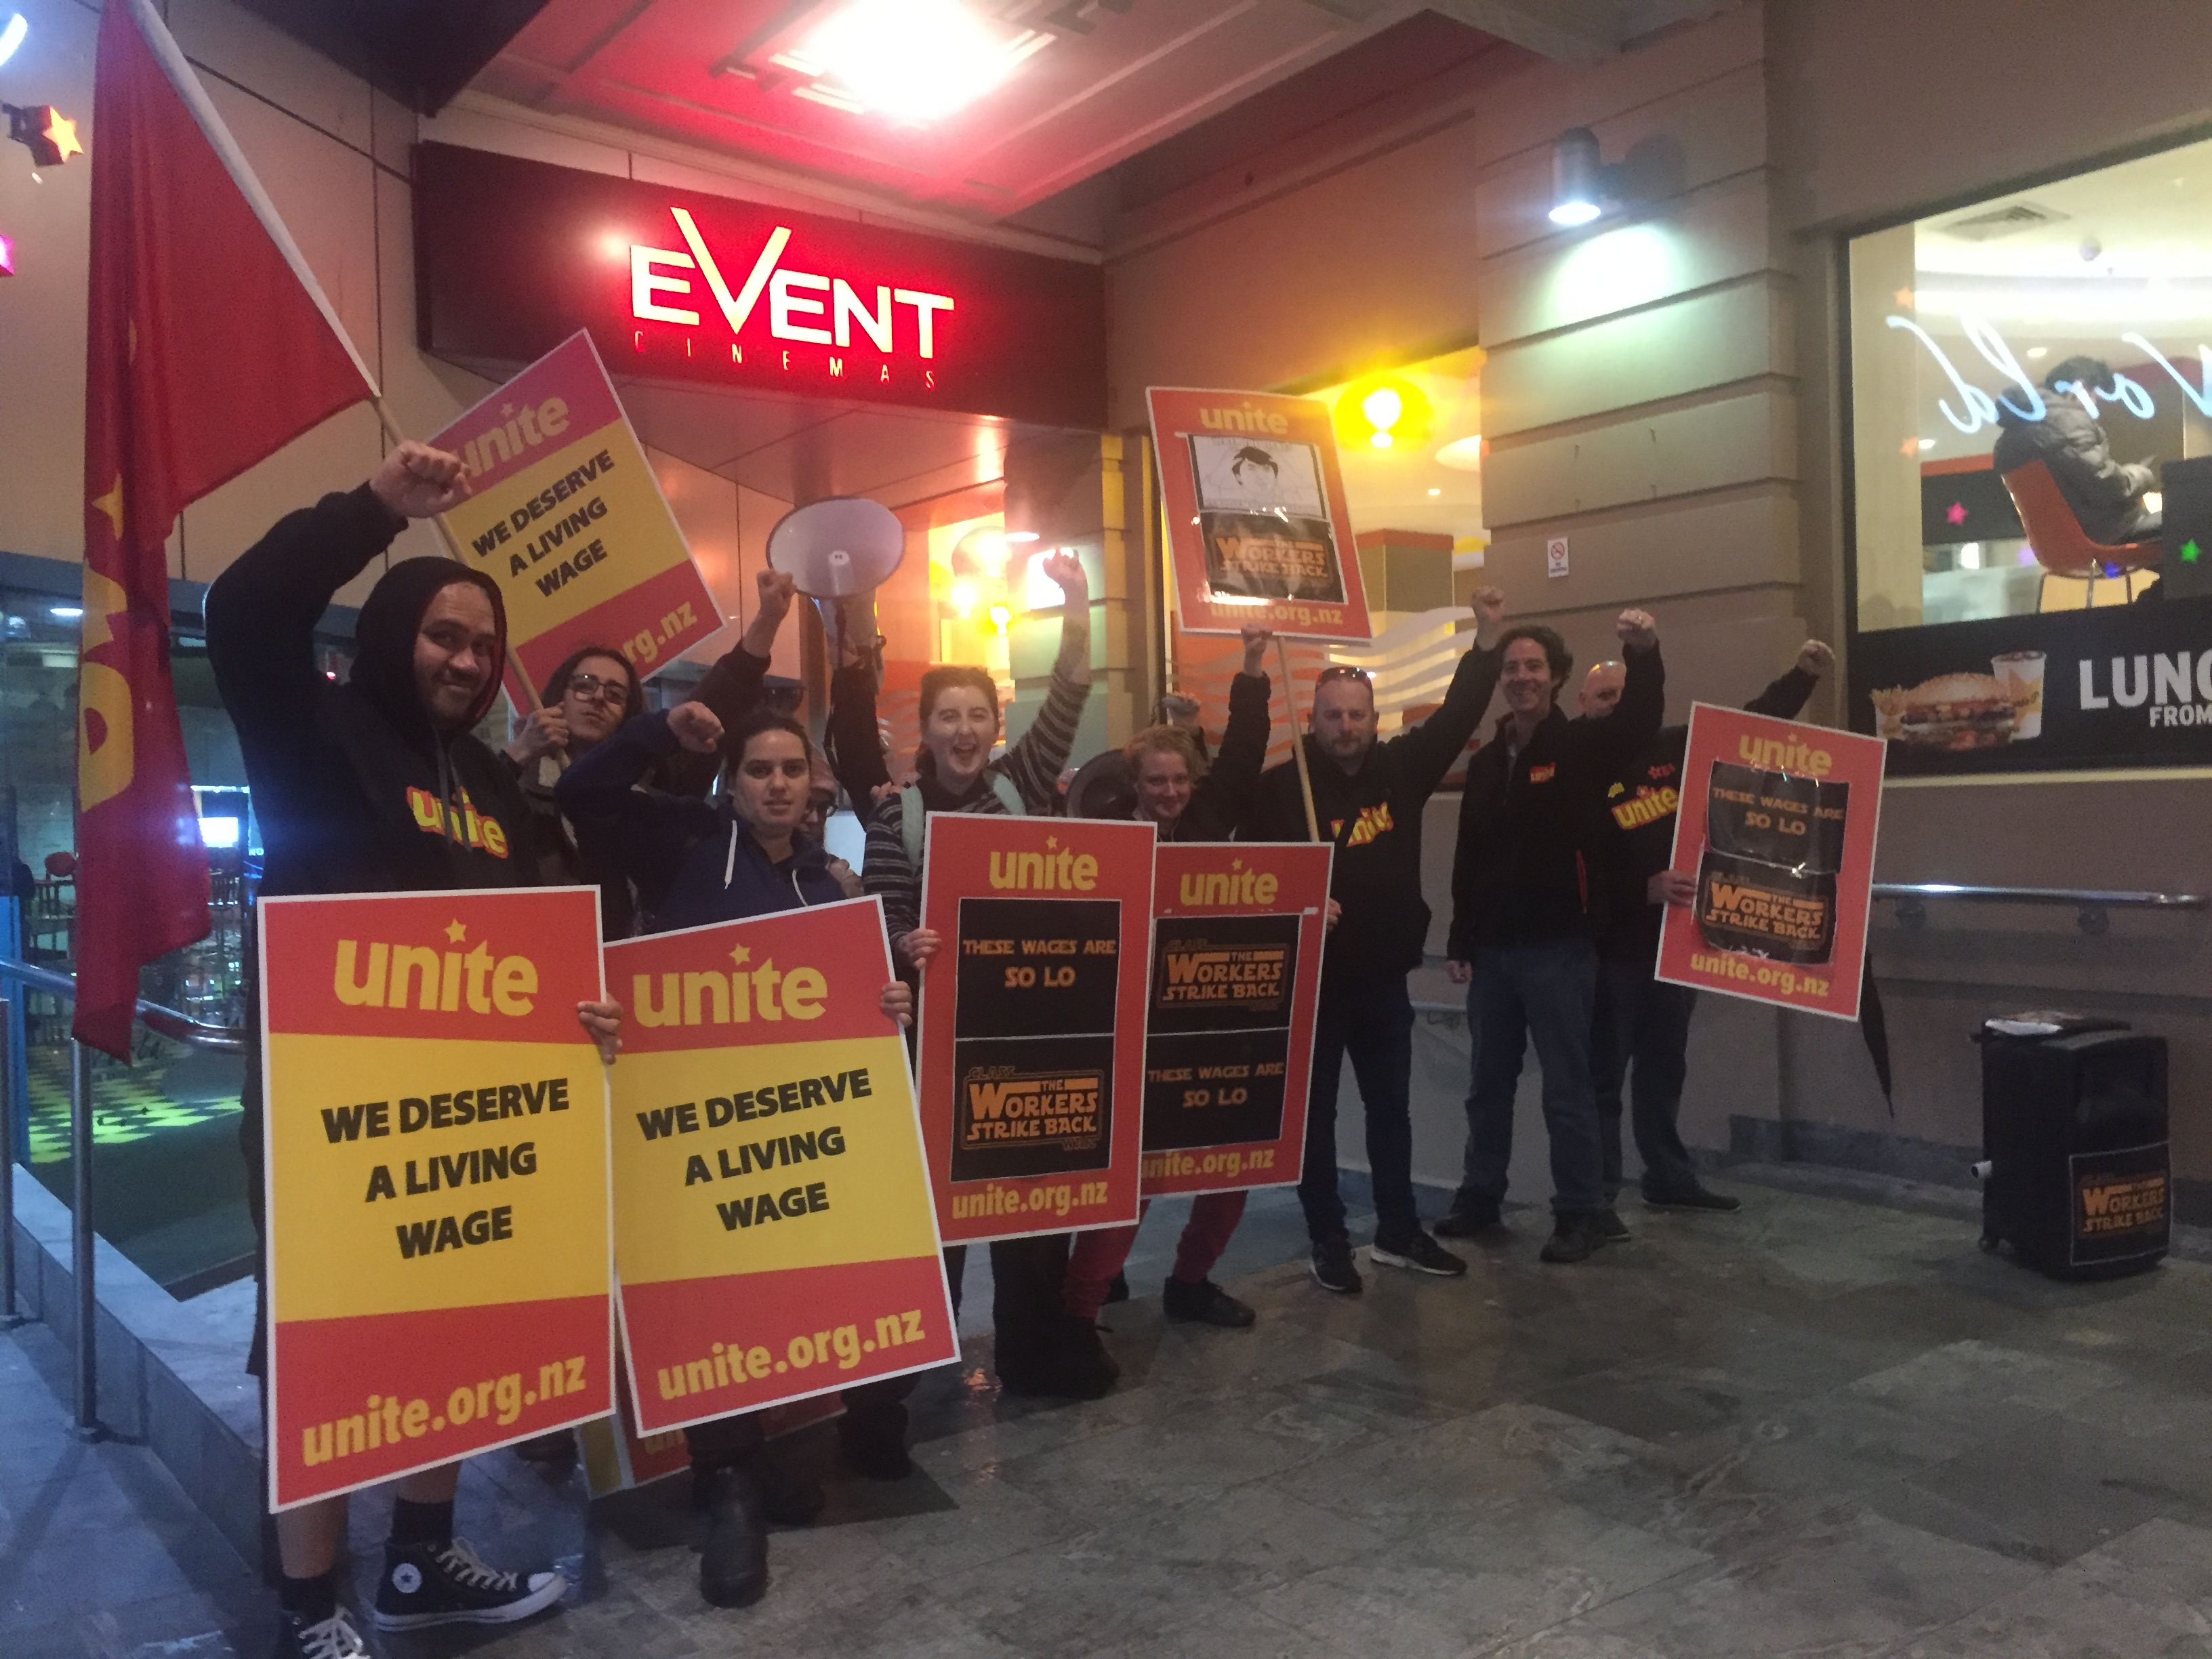 Strike action Tuesday night at star wars opening in Auckland Central